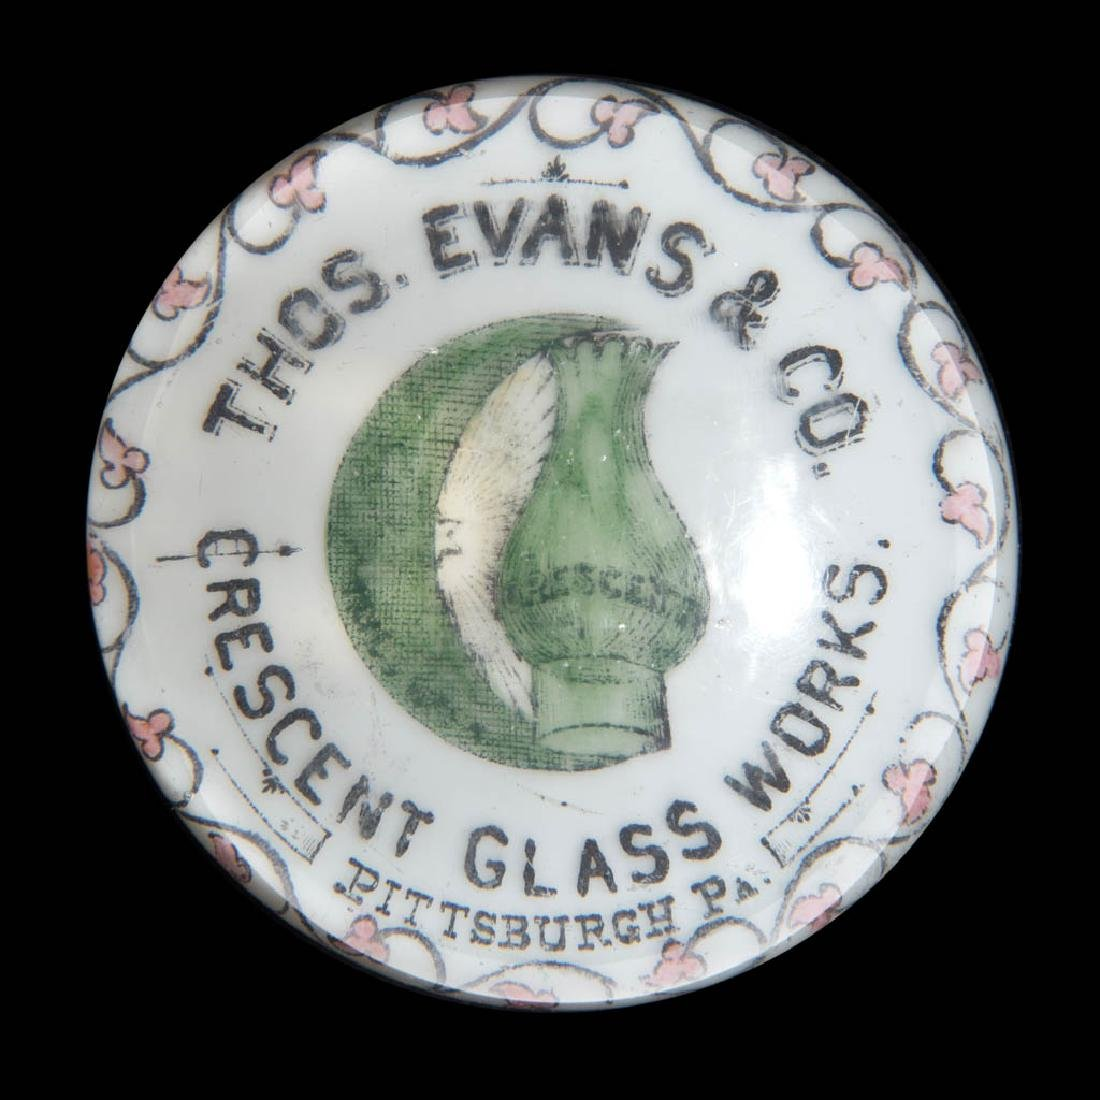 CRESCENT GLASS WORKS ADVERTISING PAPERWEIGHT